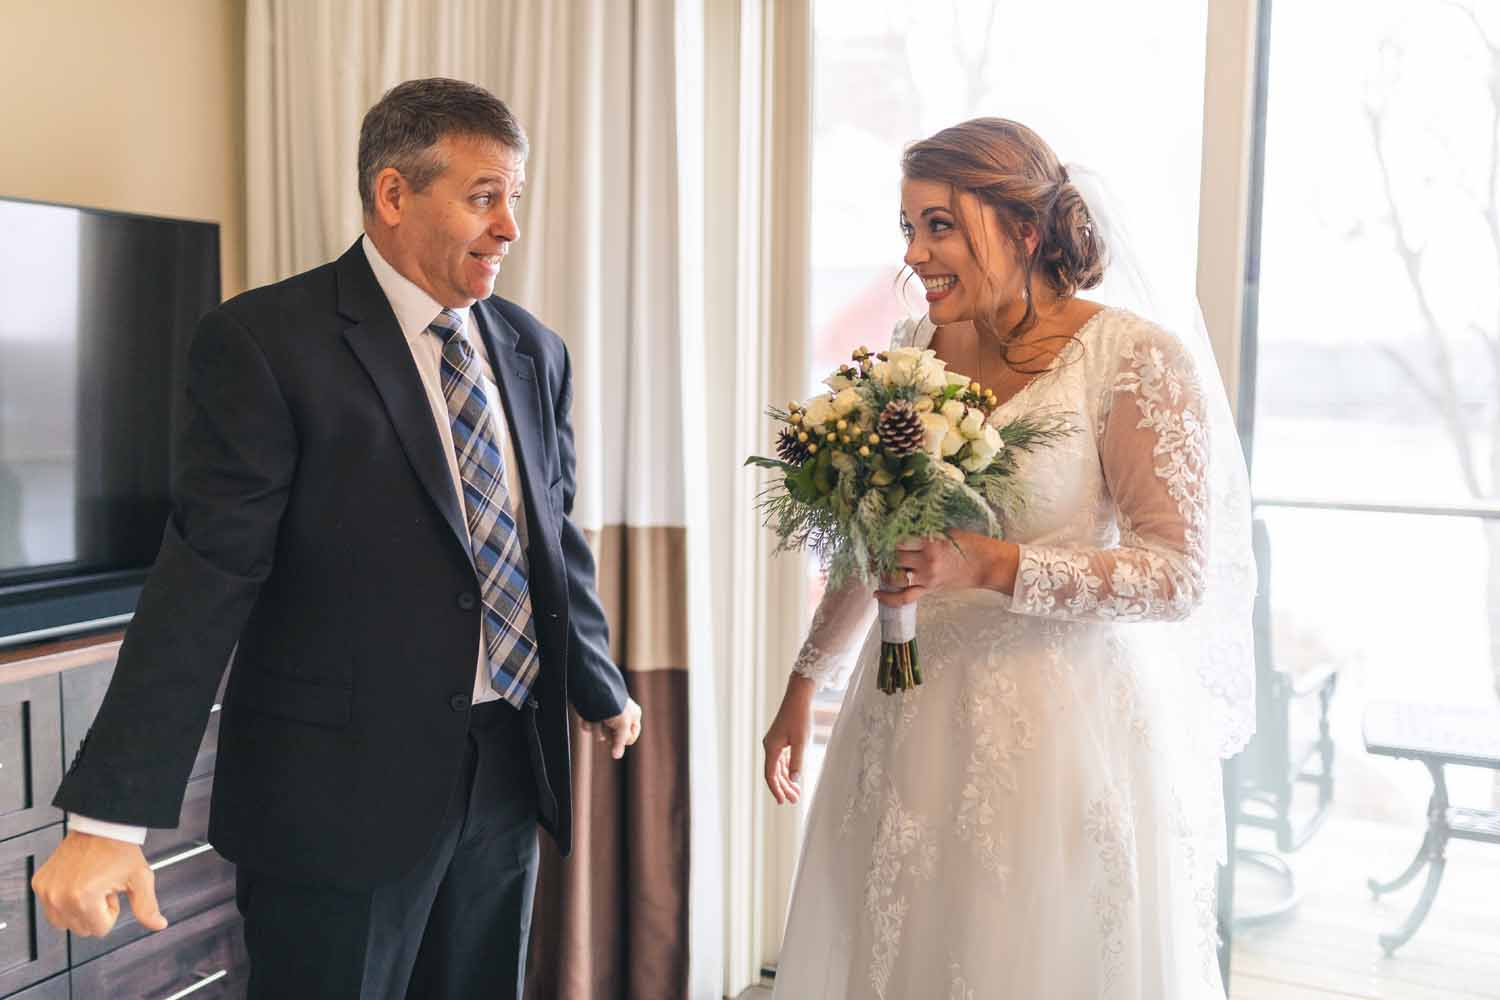 Bride and father making goofy faces at each other